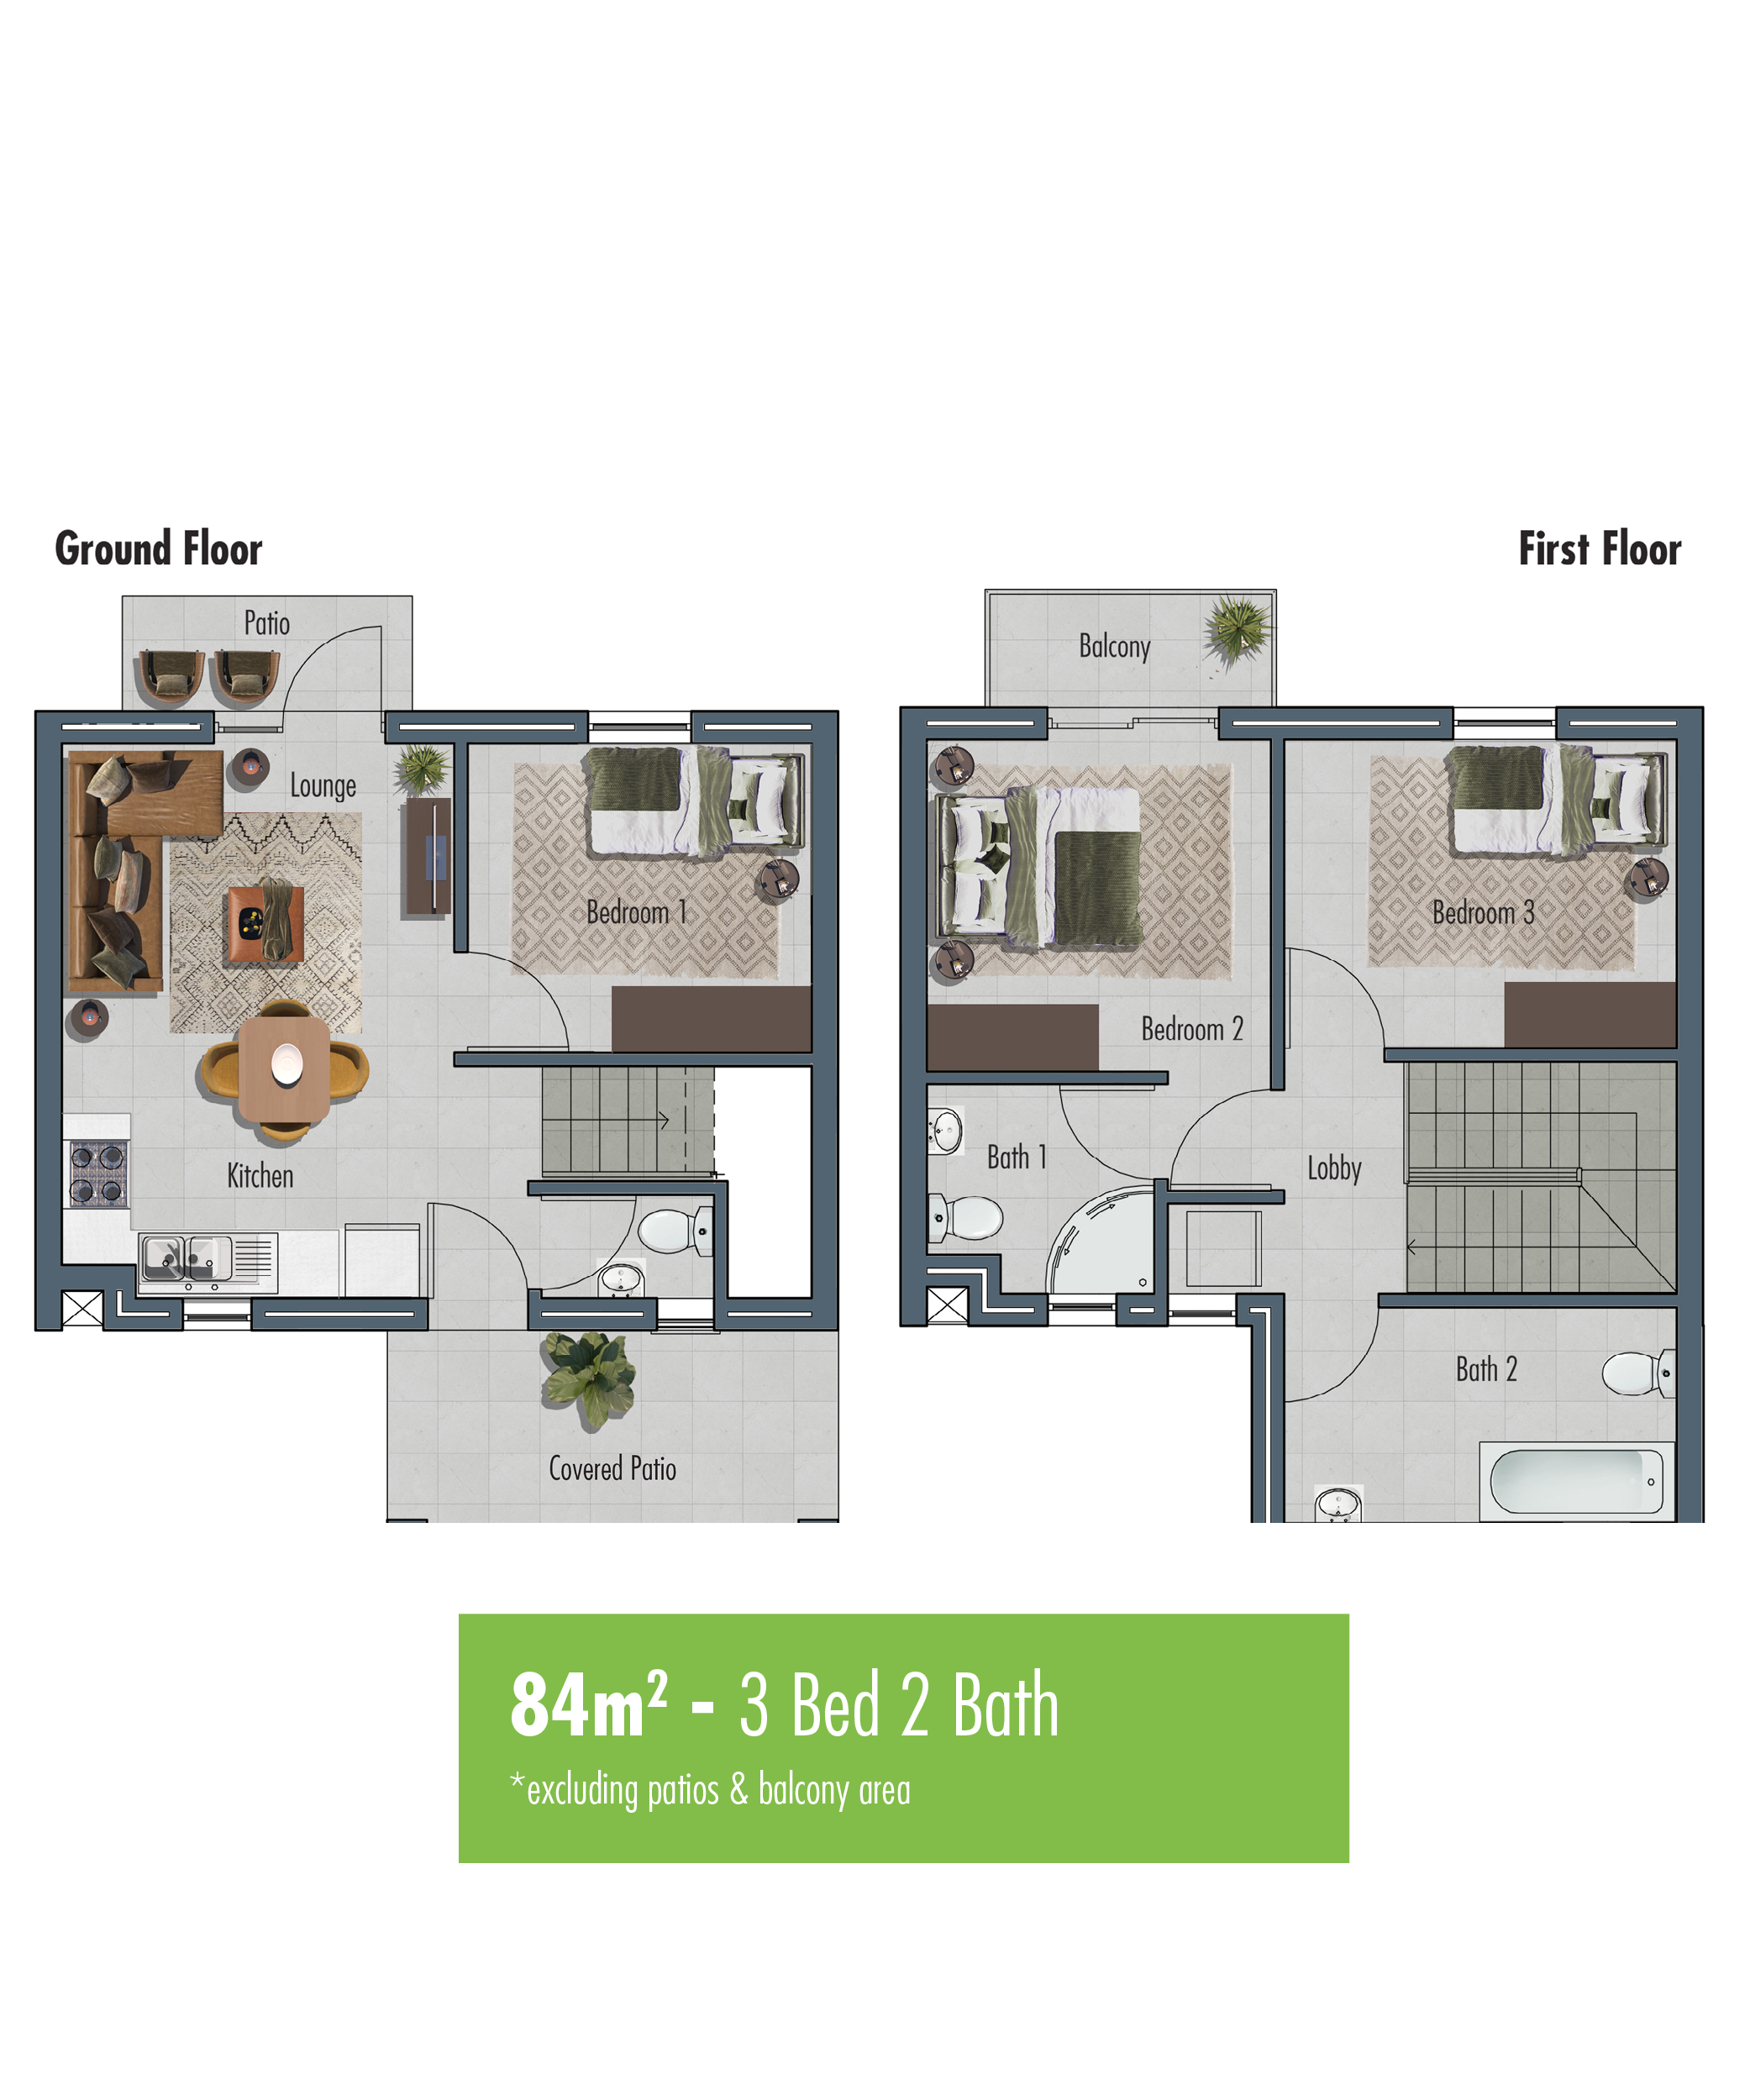 MD588 Floorplans with dollhouses thumbnails8 5